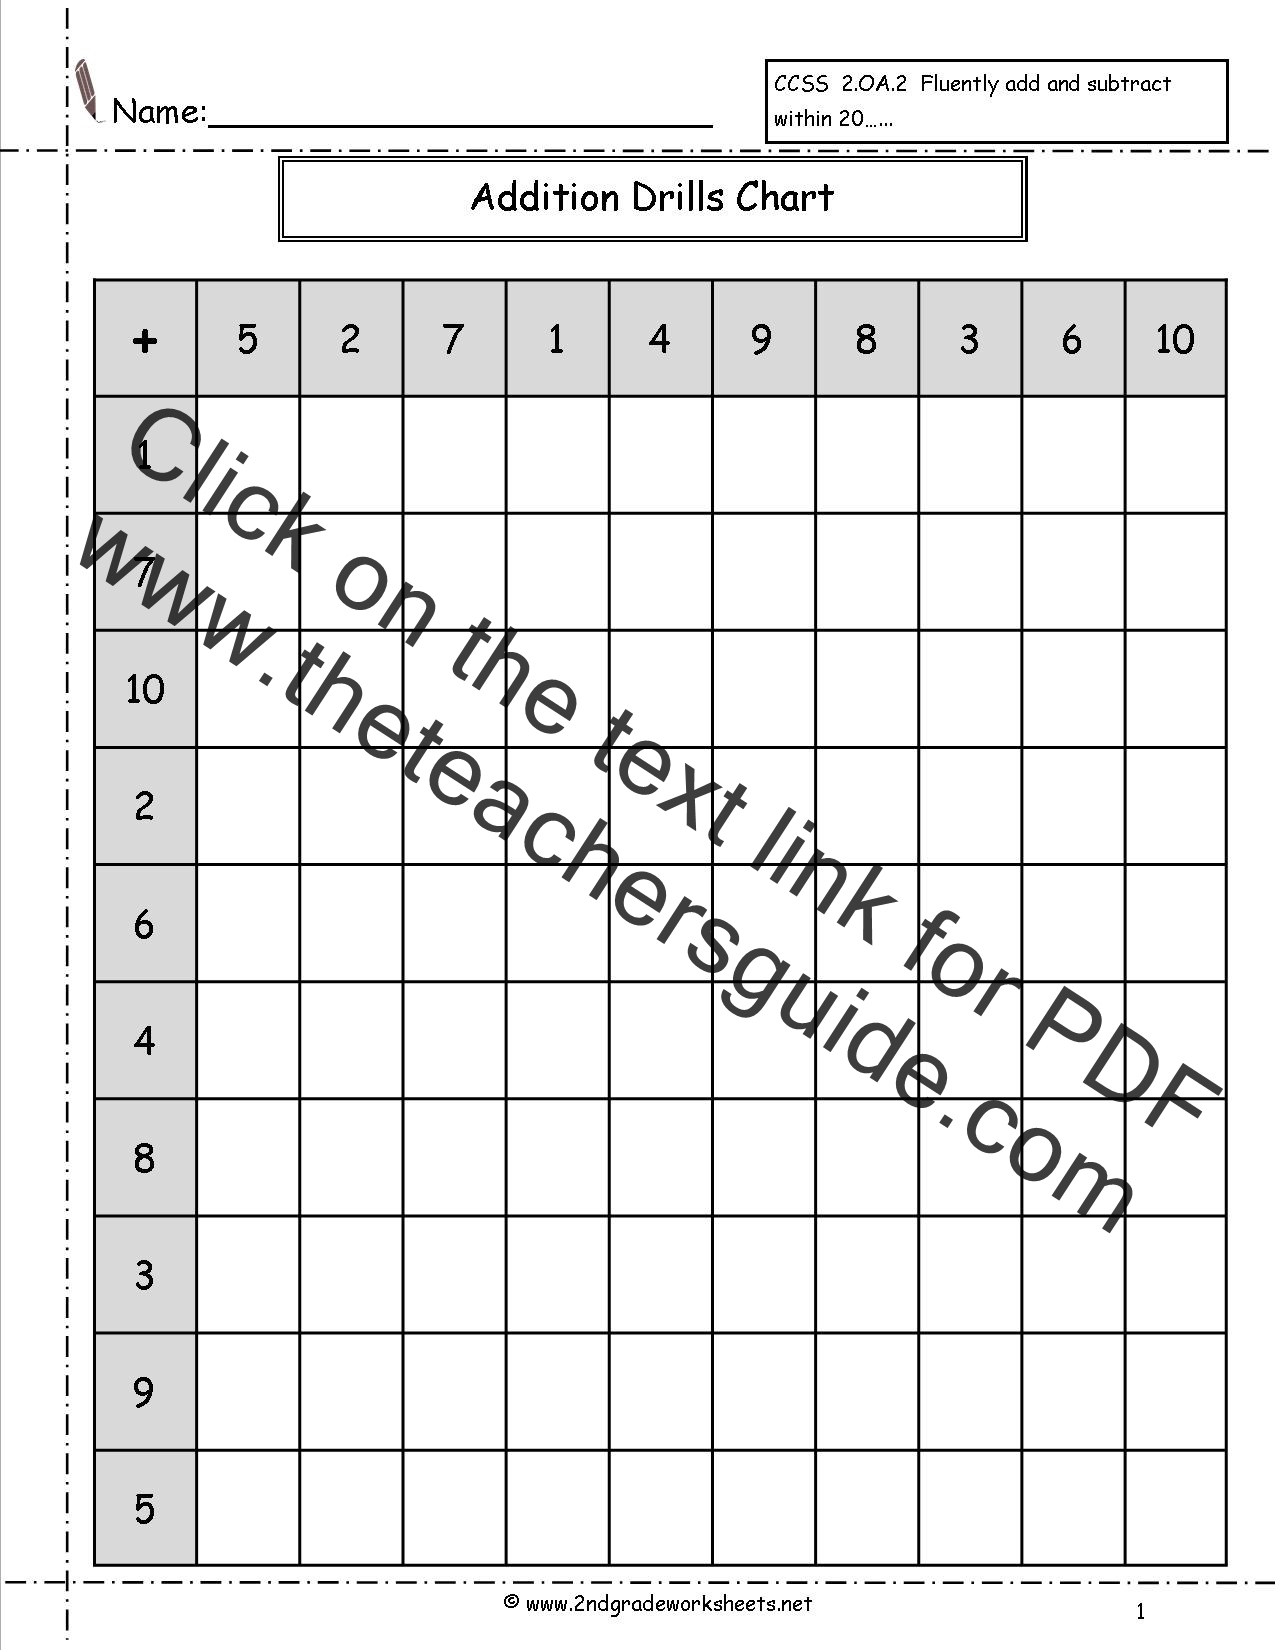 Single Digit Addition Fluency Drills Worksheets – Math Fluency Worksheets